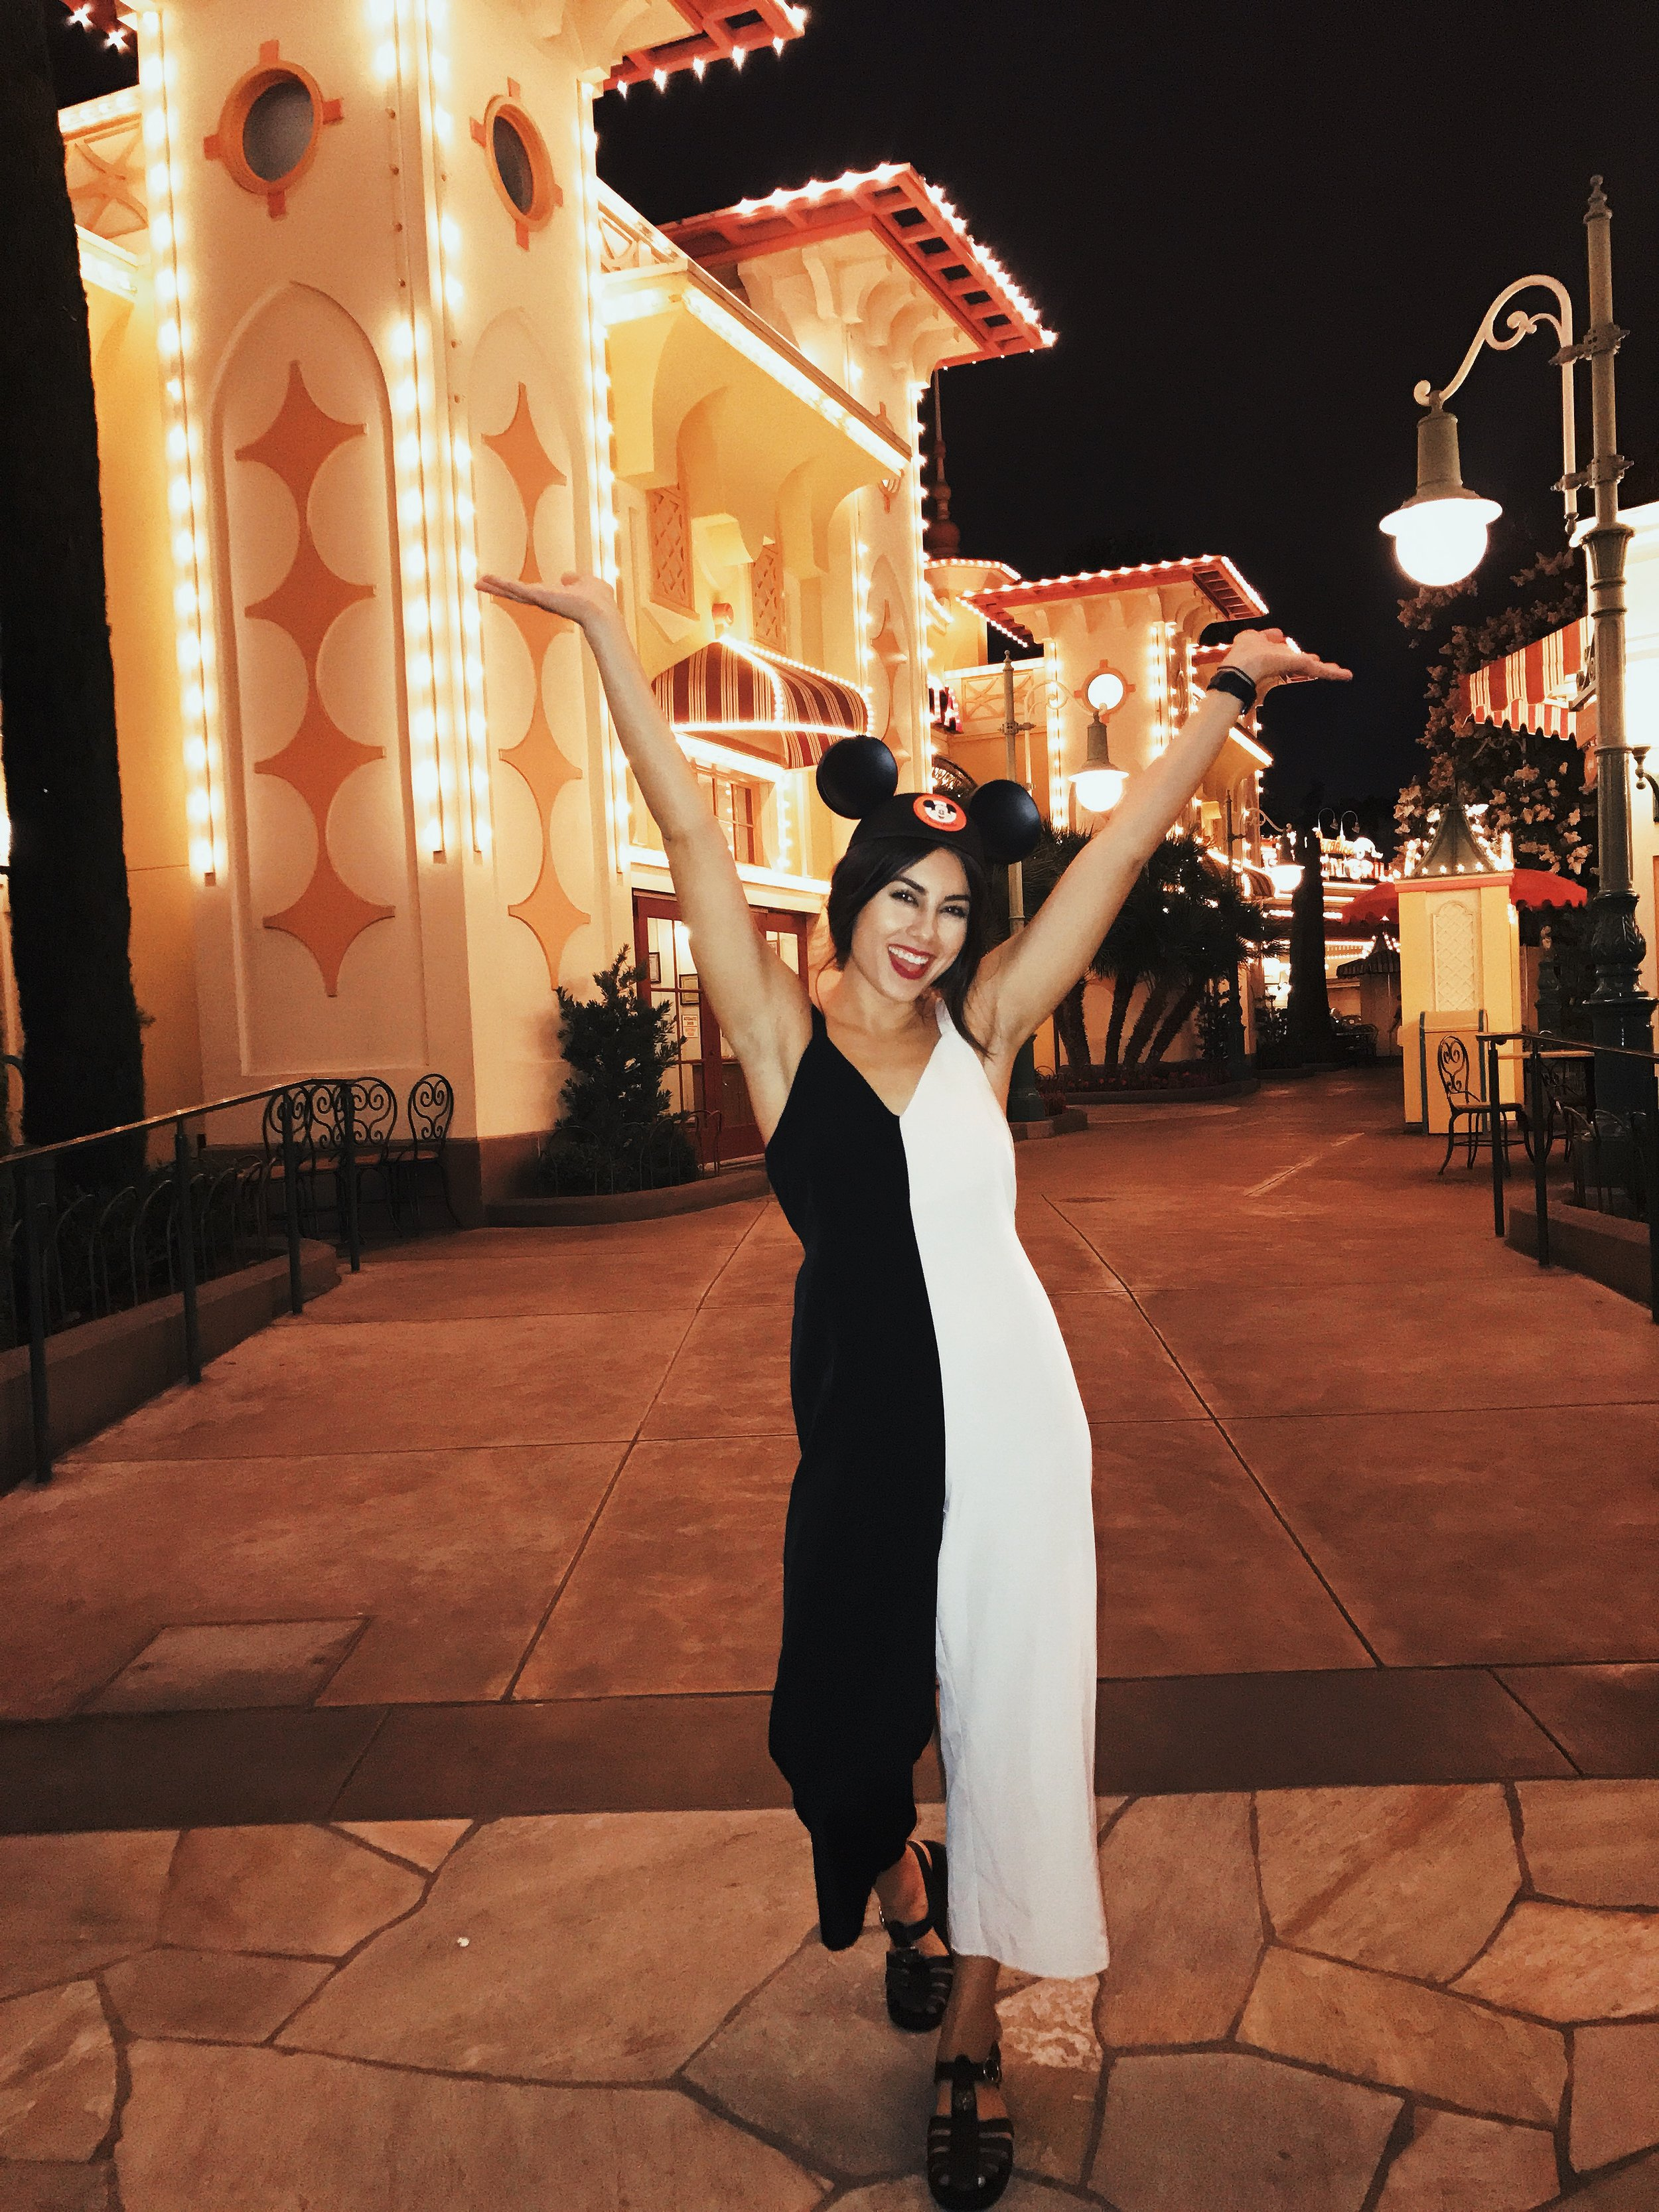 What To Wear to Disneyland - Topshop Jumpsuit